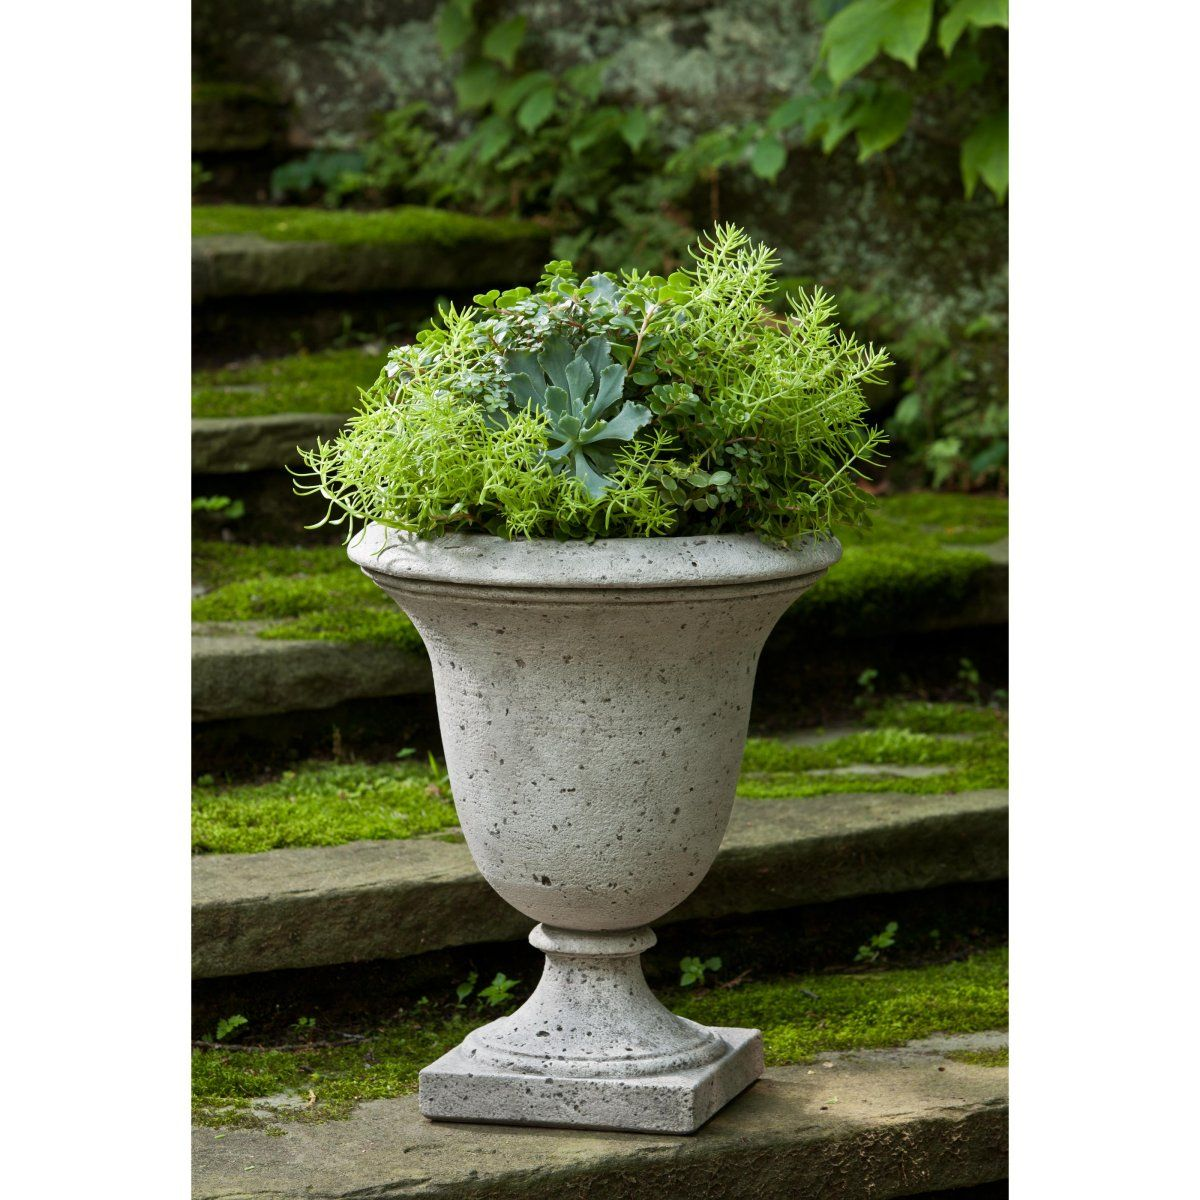 fall planters decorating mums urns grasses kale hollow porch outdoor fox idea cottage planter pumpkins fabulous and urn front